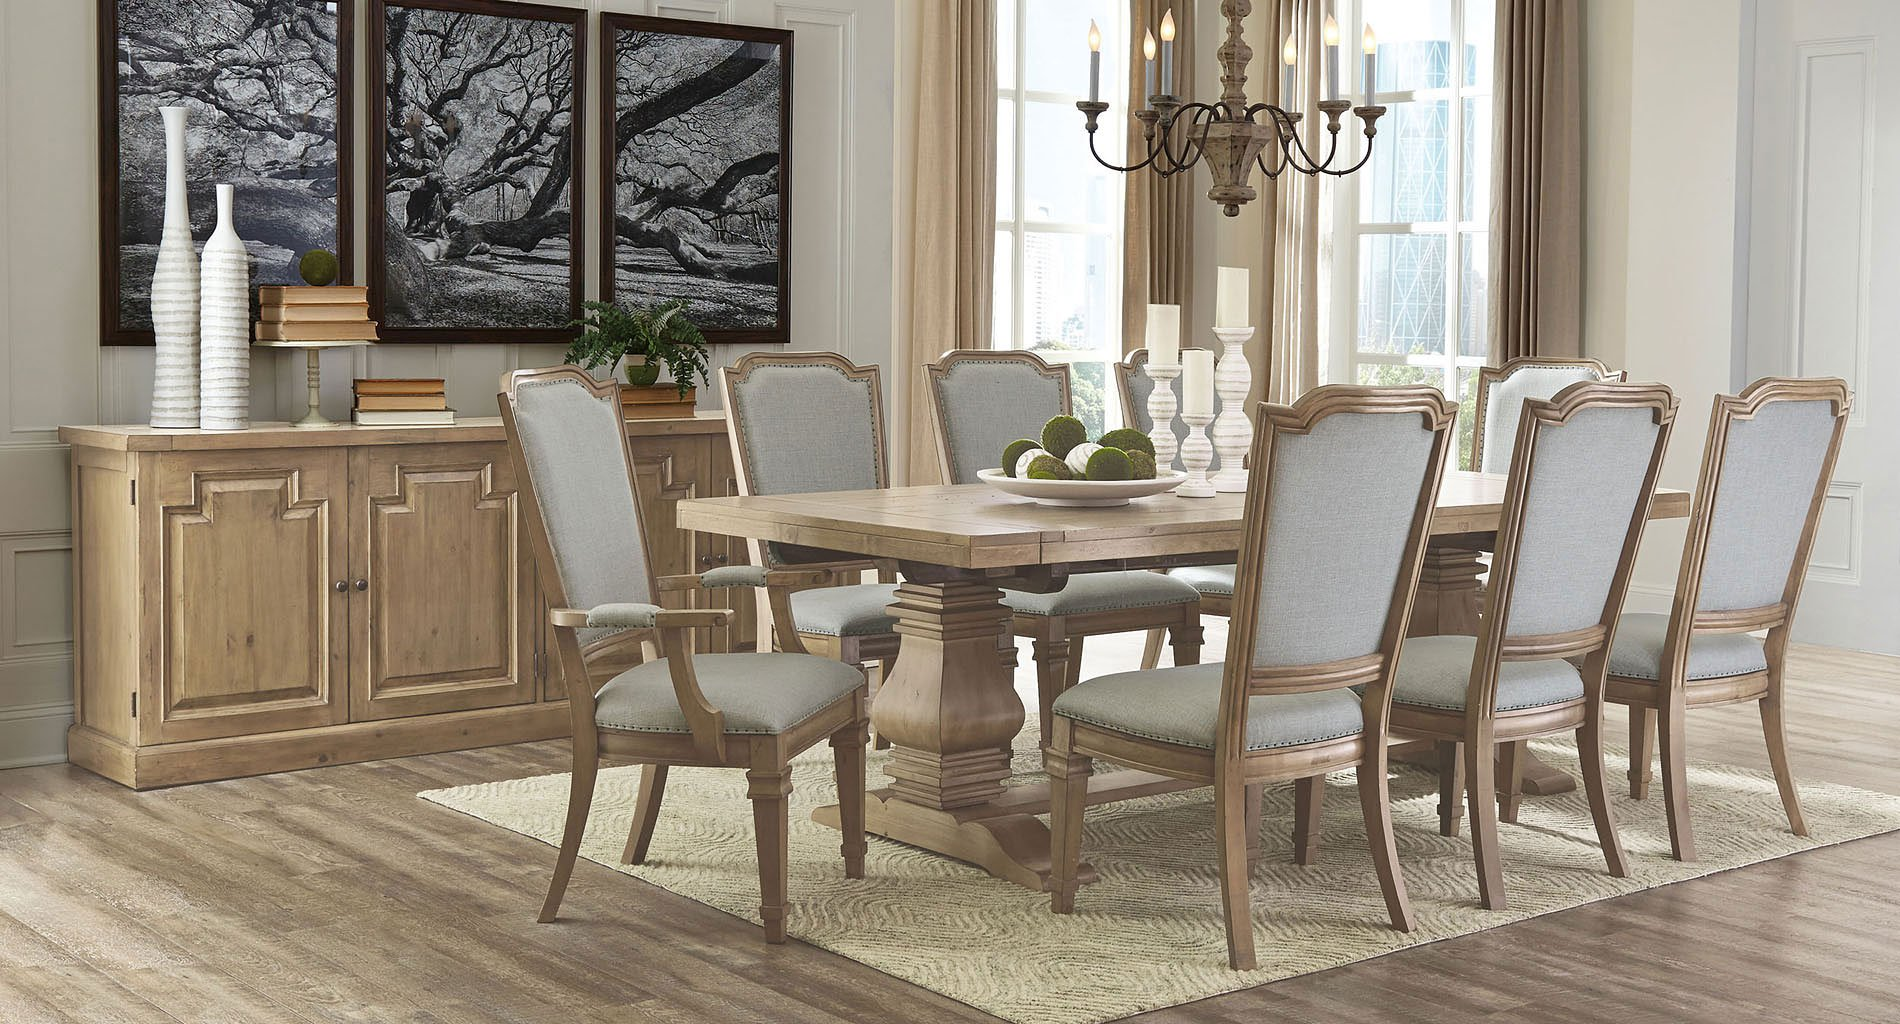 Florence Rectangular Dining Room Set w/ Vintage Chairs ...